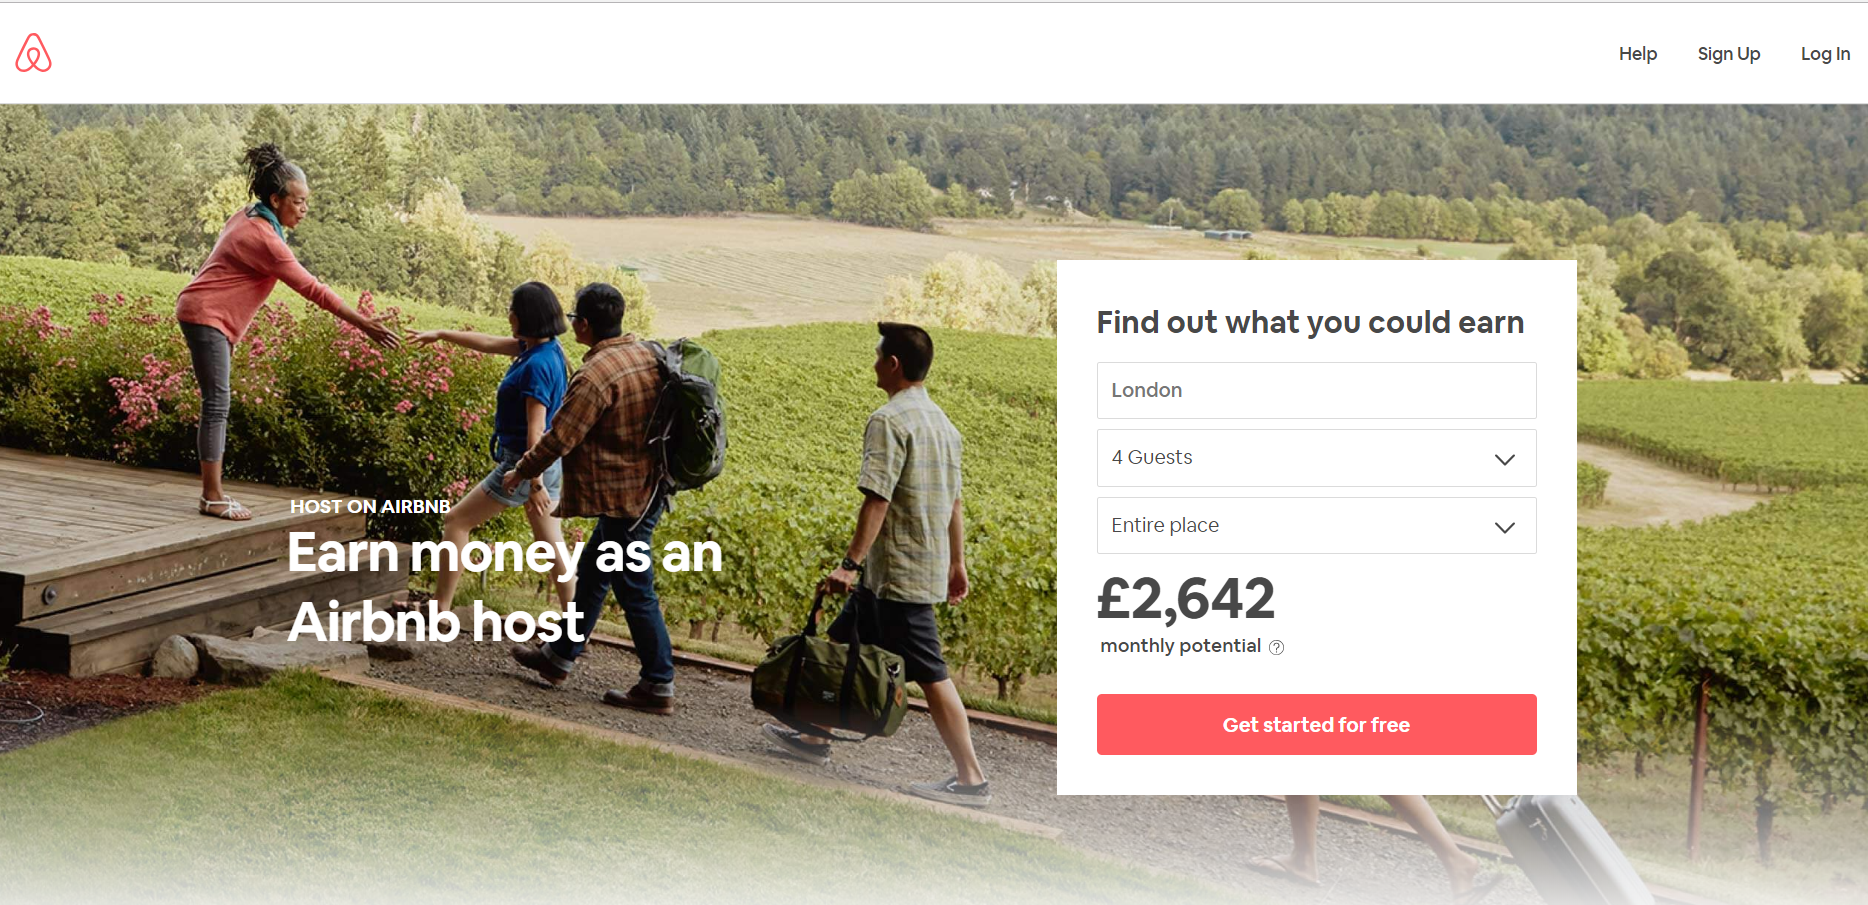 AirBNB Landing Page 1 - Build the Perfect PPC Landing Page: Best Practice & Examples